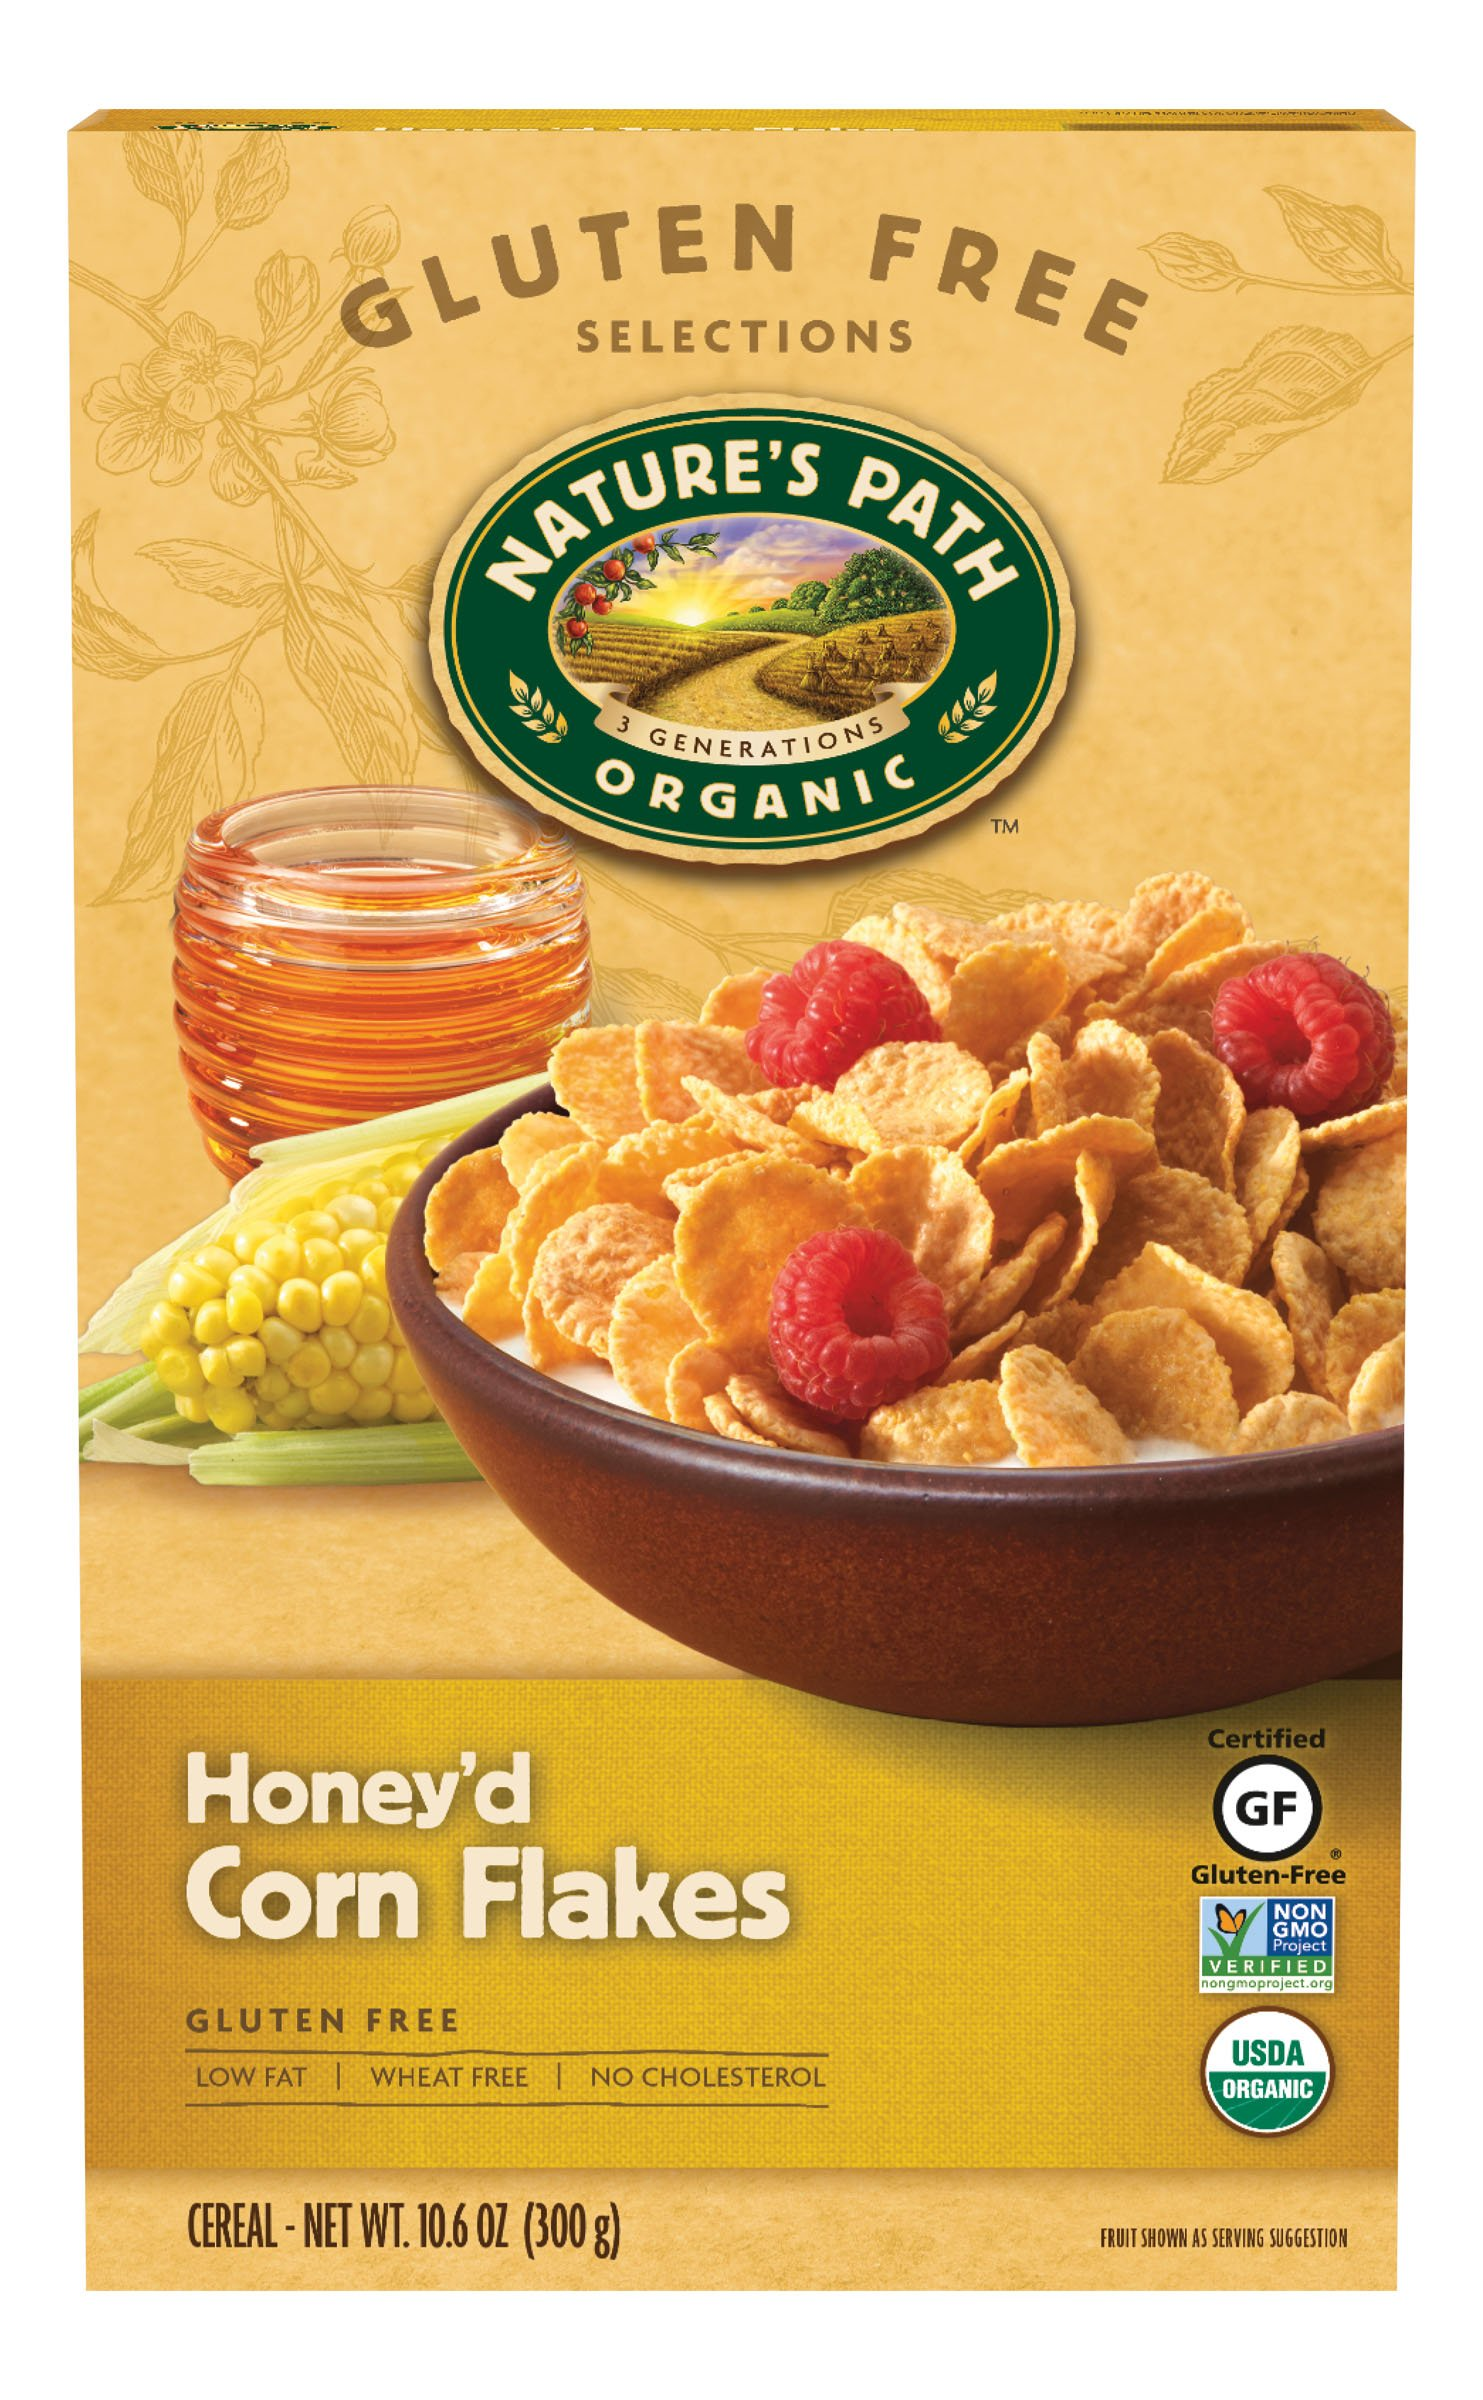 Nature's Path Organic Gluten-Free Cereal, Honey'd Corn Flakes, 10.6 Ounce Box (Pack of 6)